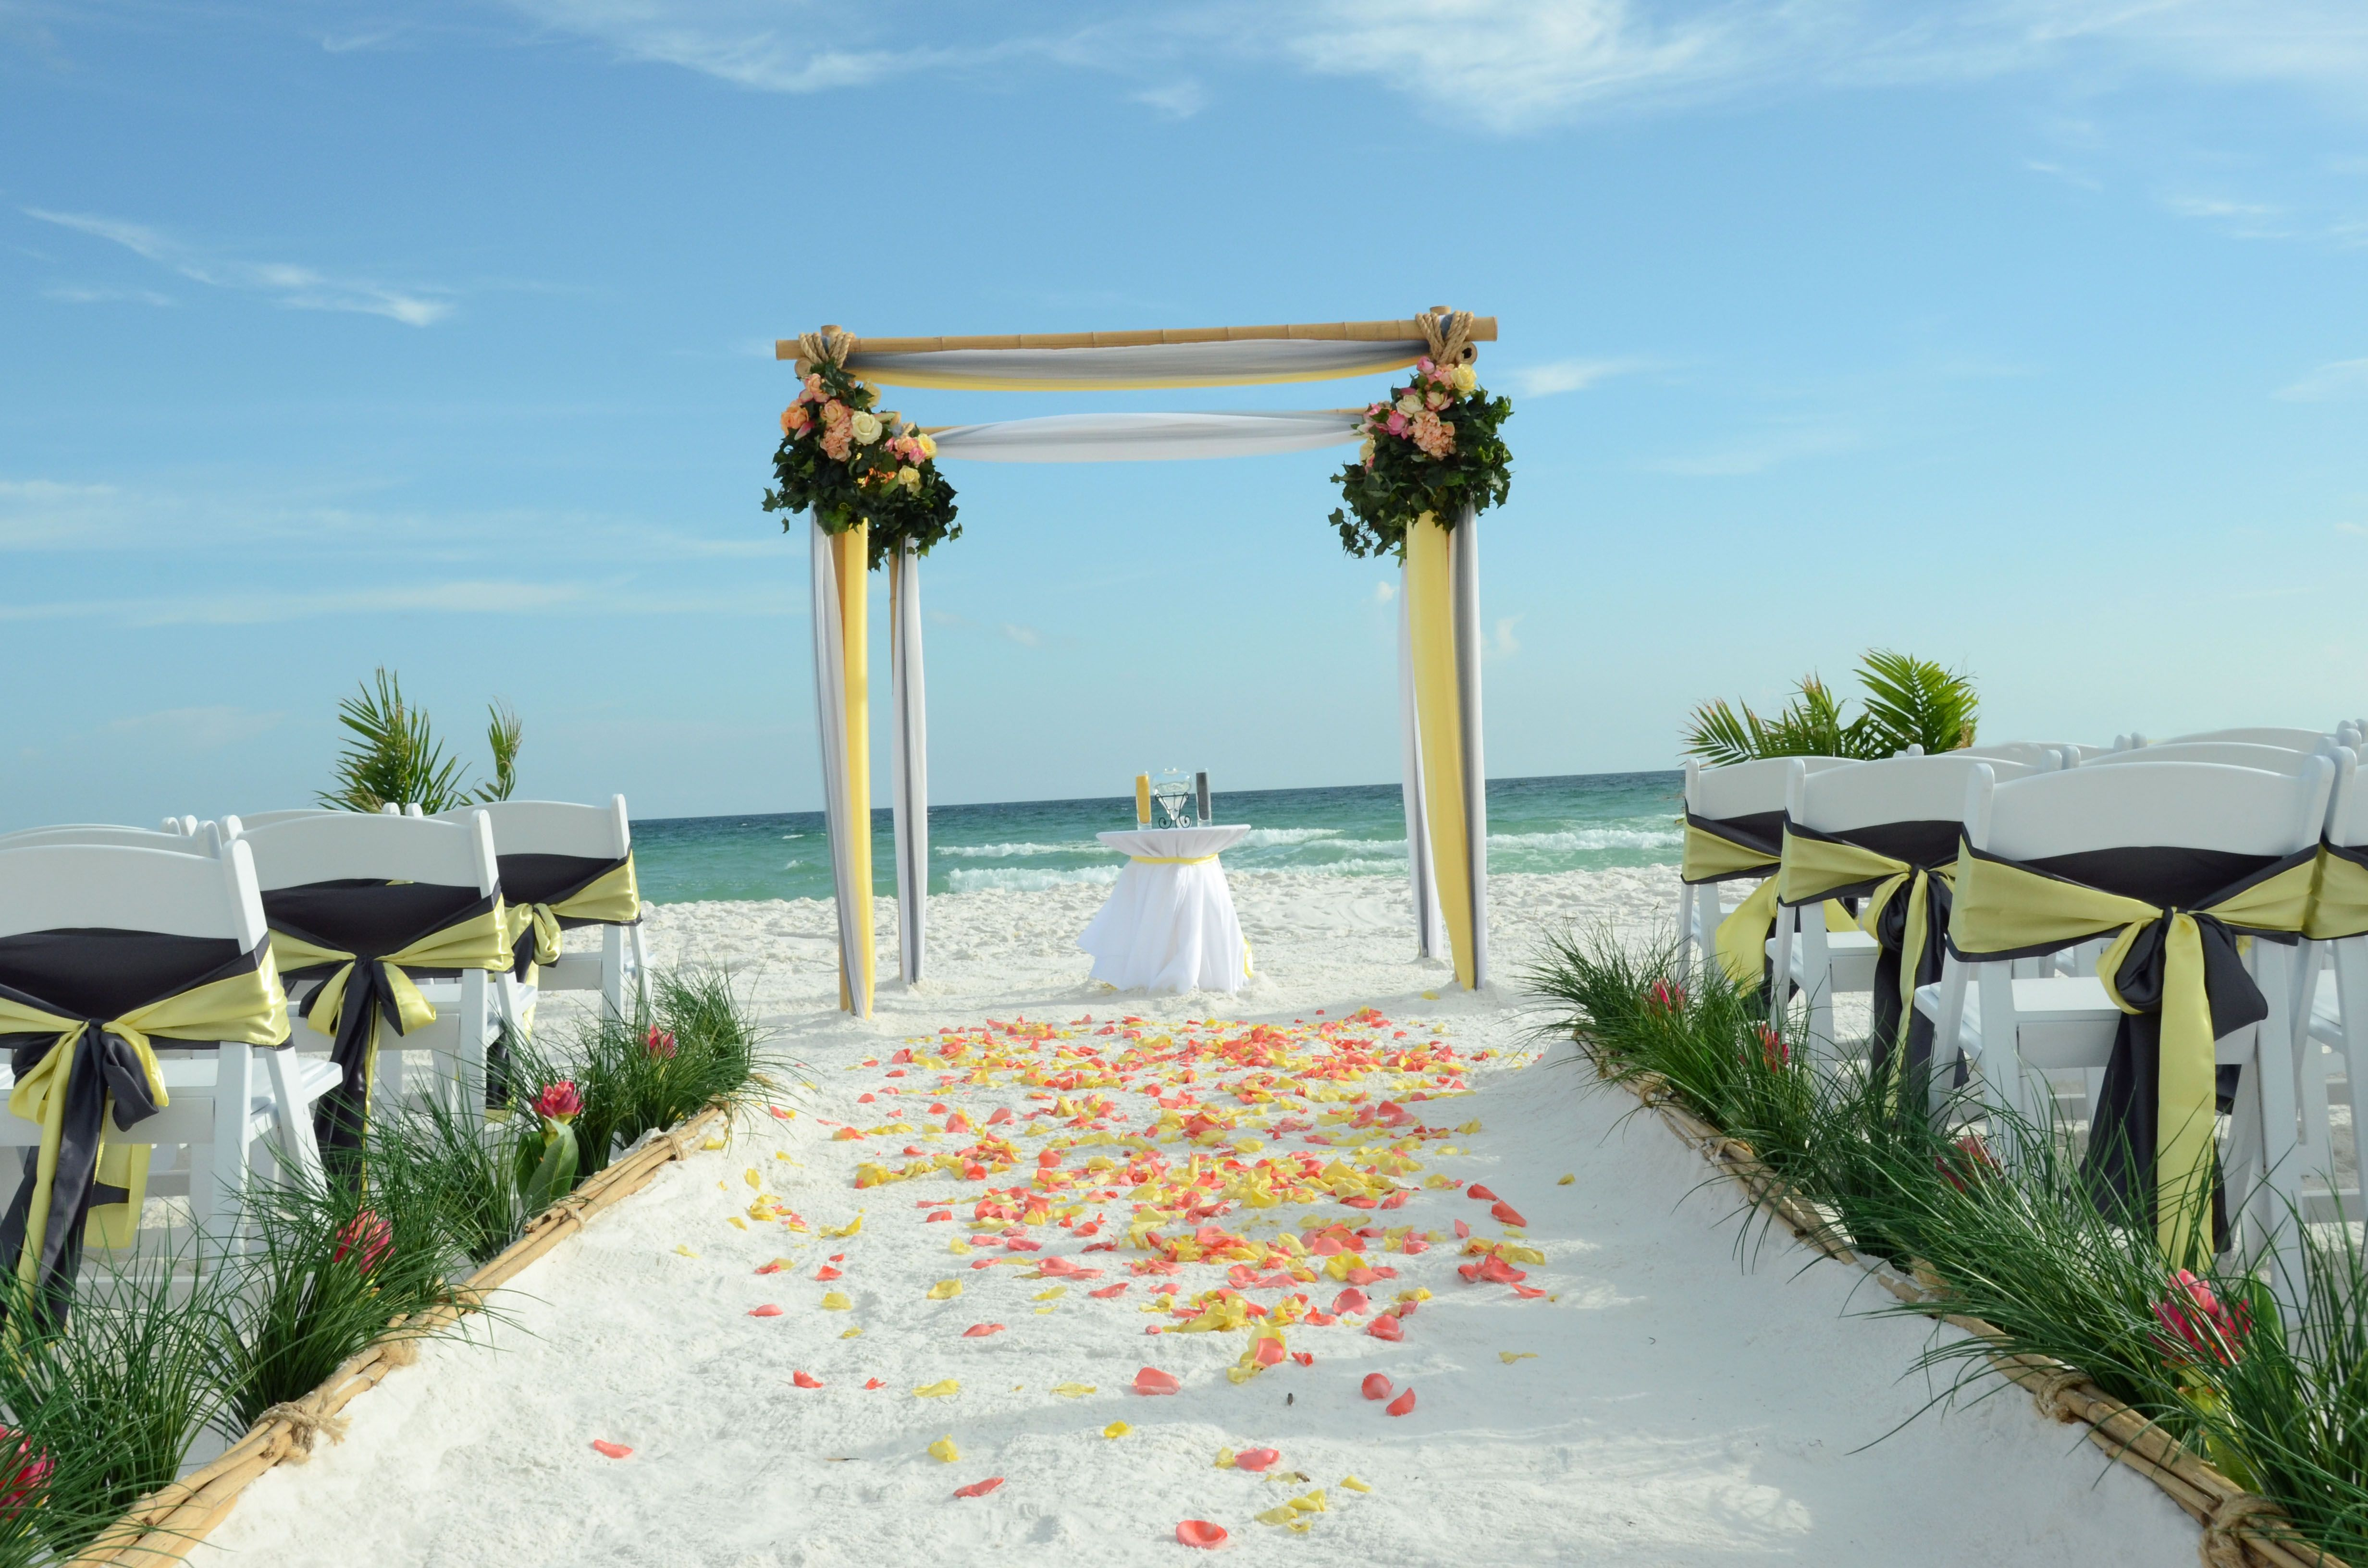 Pewter grey and yellow wedding colors. Photo and setup by